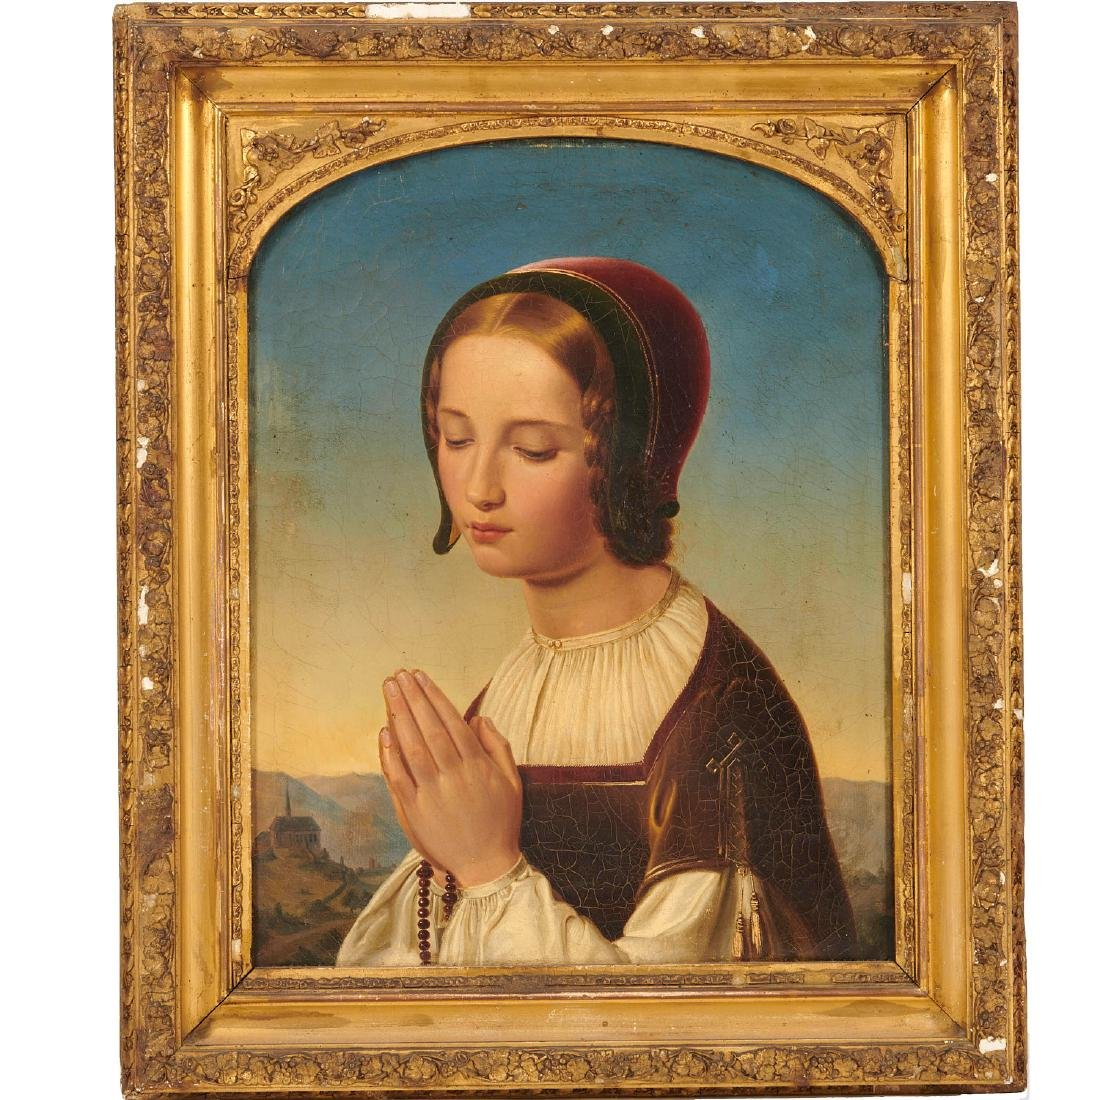 Giovanni Bellini (manner of), painting